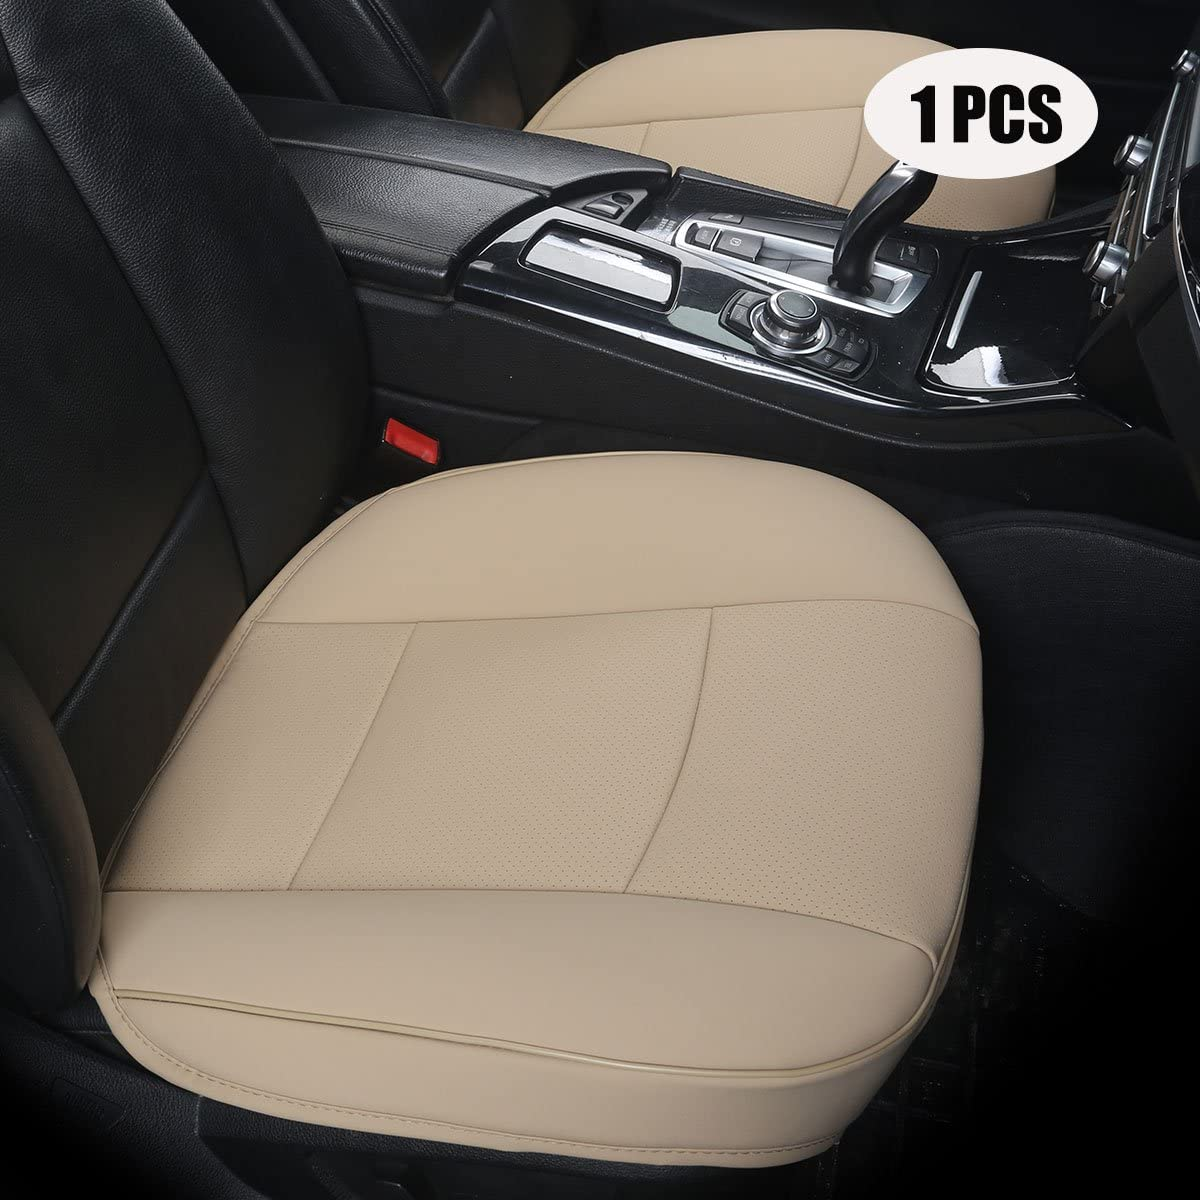 EDEALYN Ultra-Luxury PU Leather Car Seat Cover